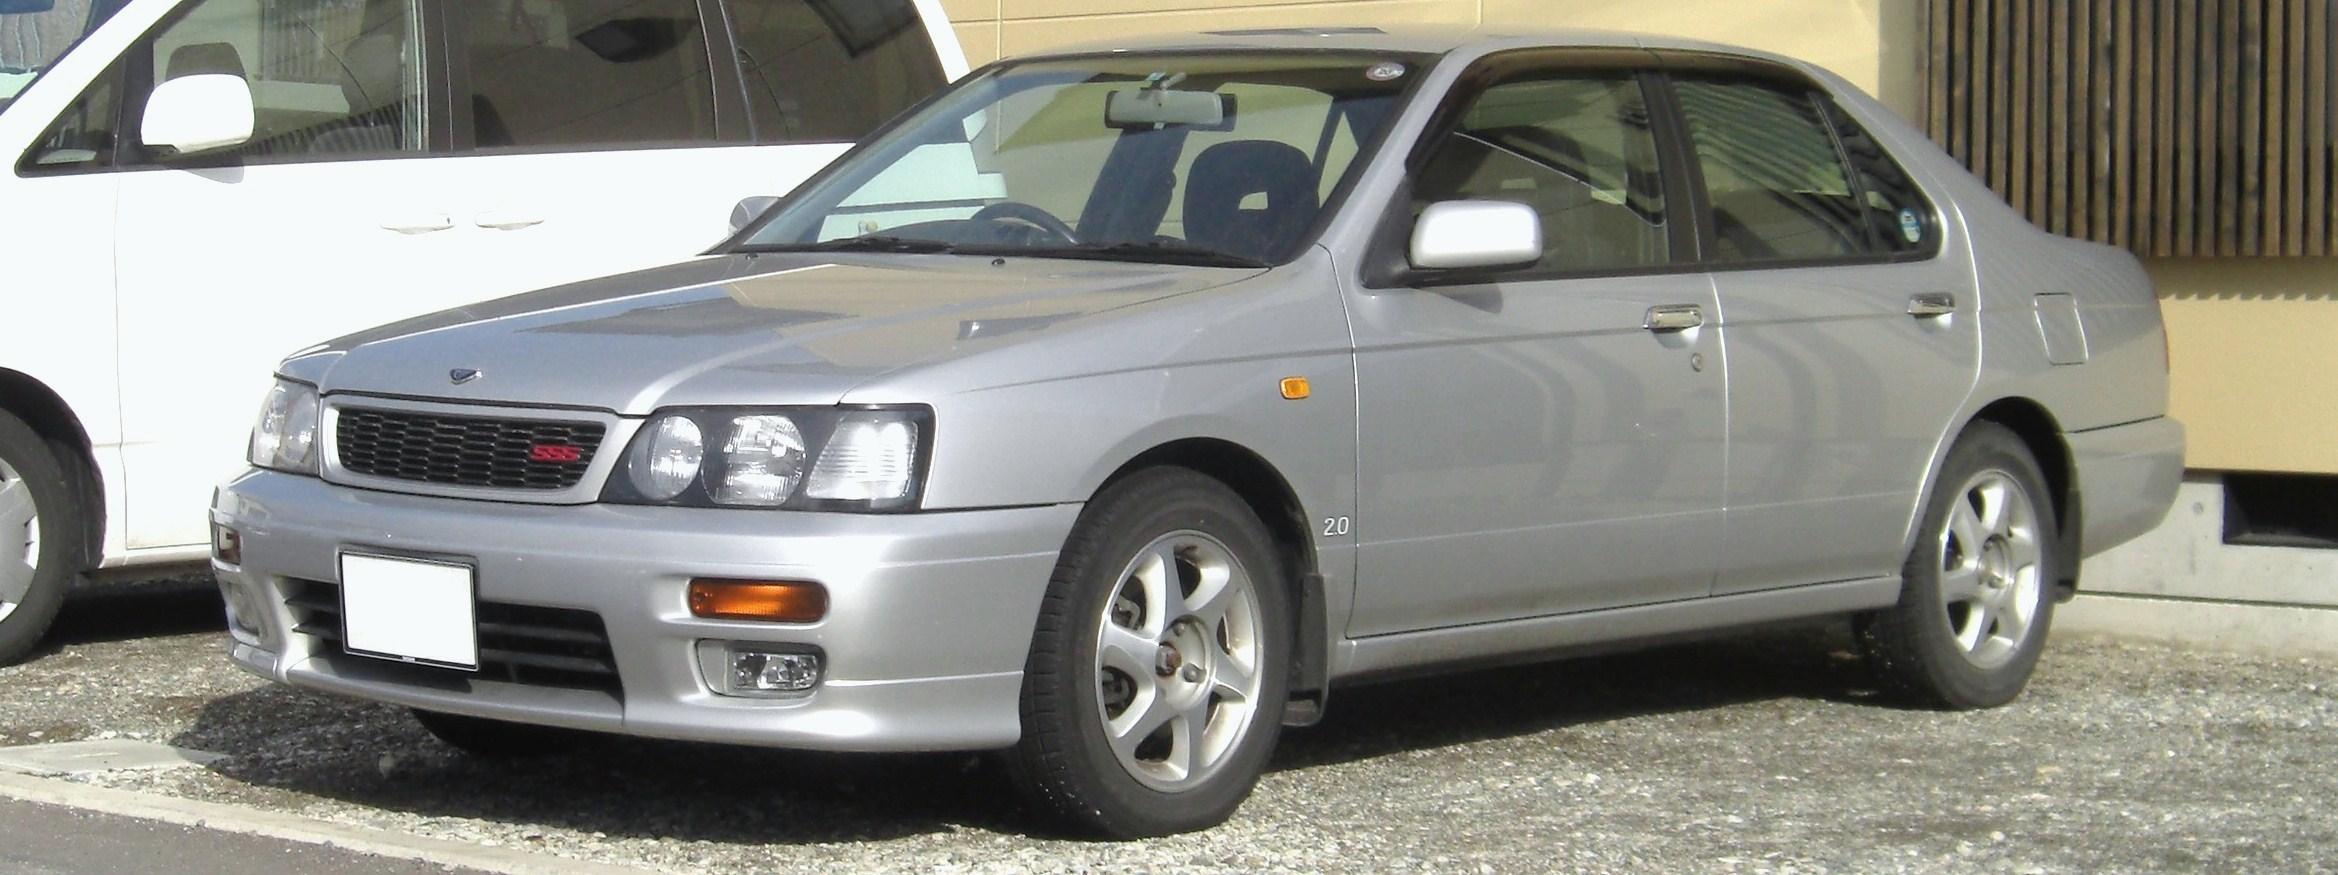 Nissan March Tuning >> File:NISSAN Bluebird SSS.jpg - Wikimedia Commons